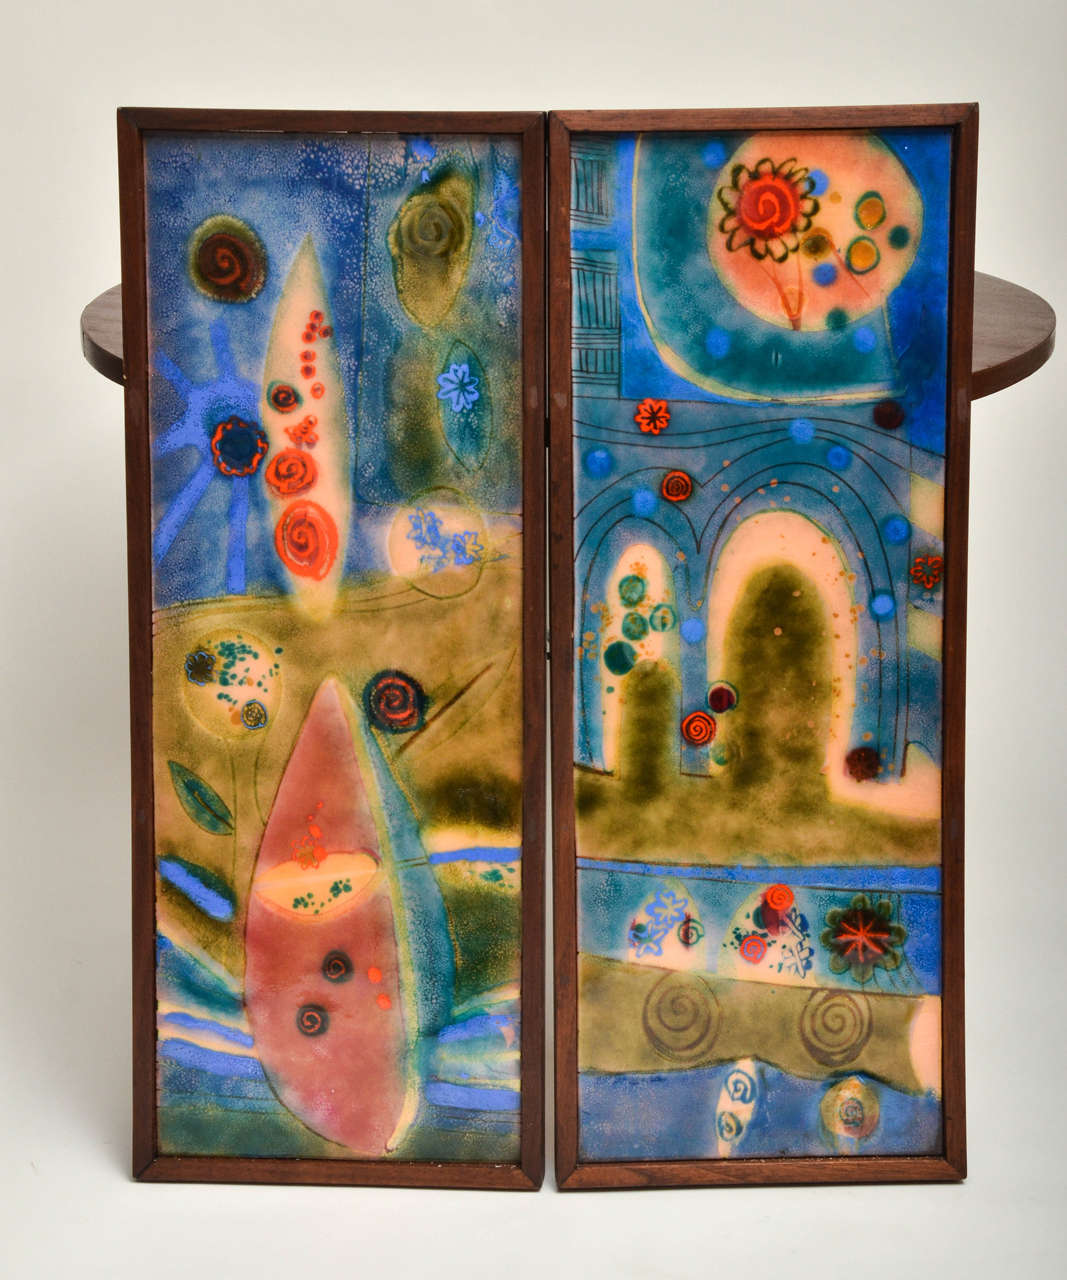 Colorful Pair Of Enamel On Copper Wall Art In Wood Frame.